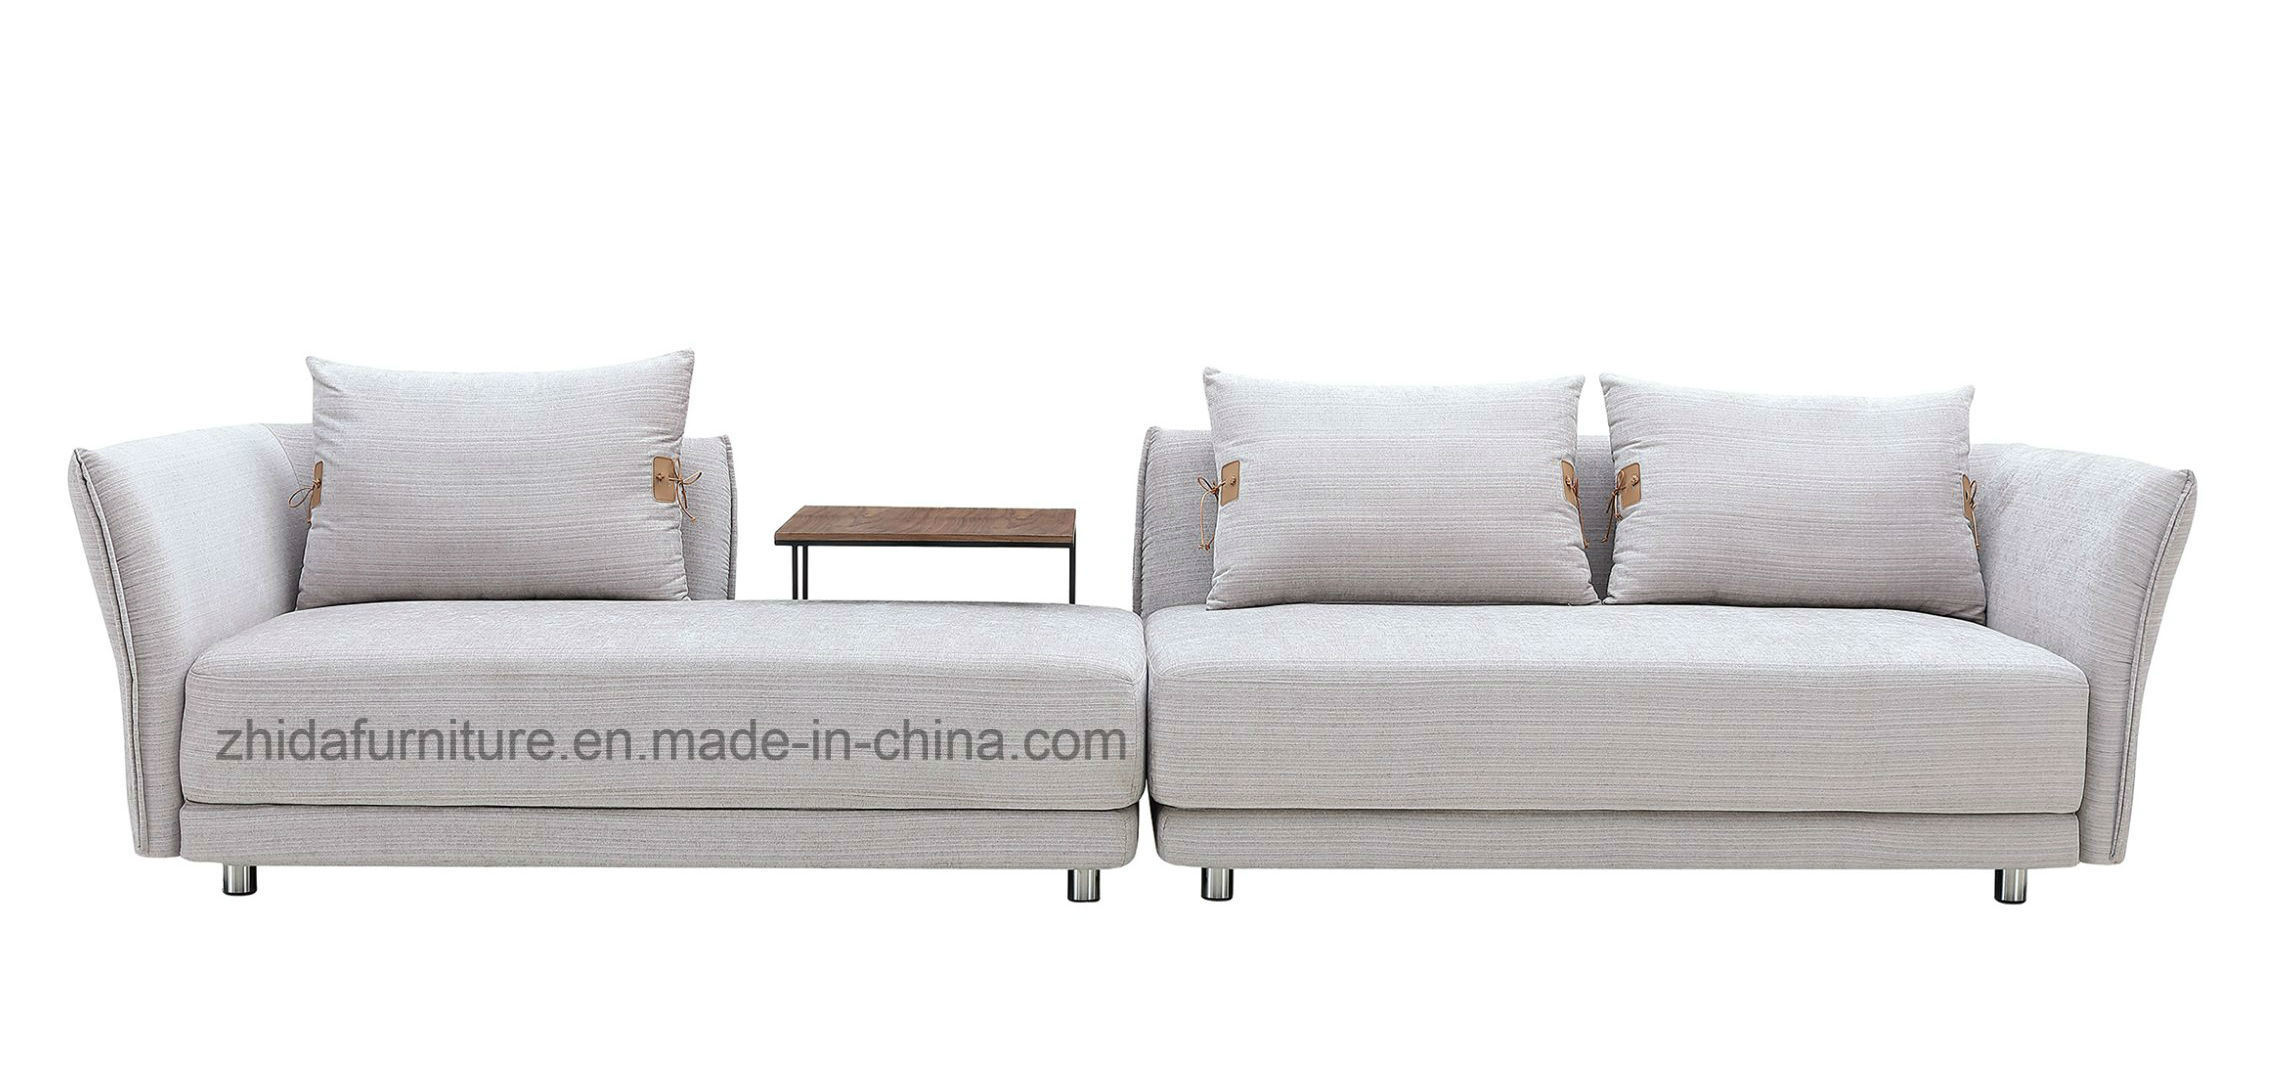 Picture of: China Modern L Shape Fabric Sofa China Indoor Furniture Sectional Sofa